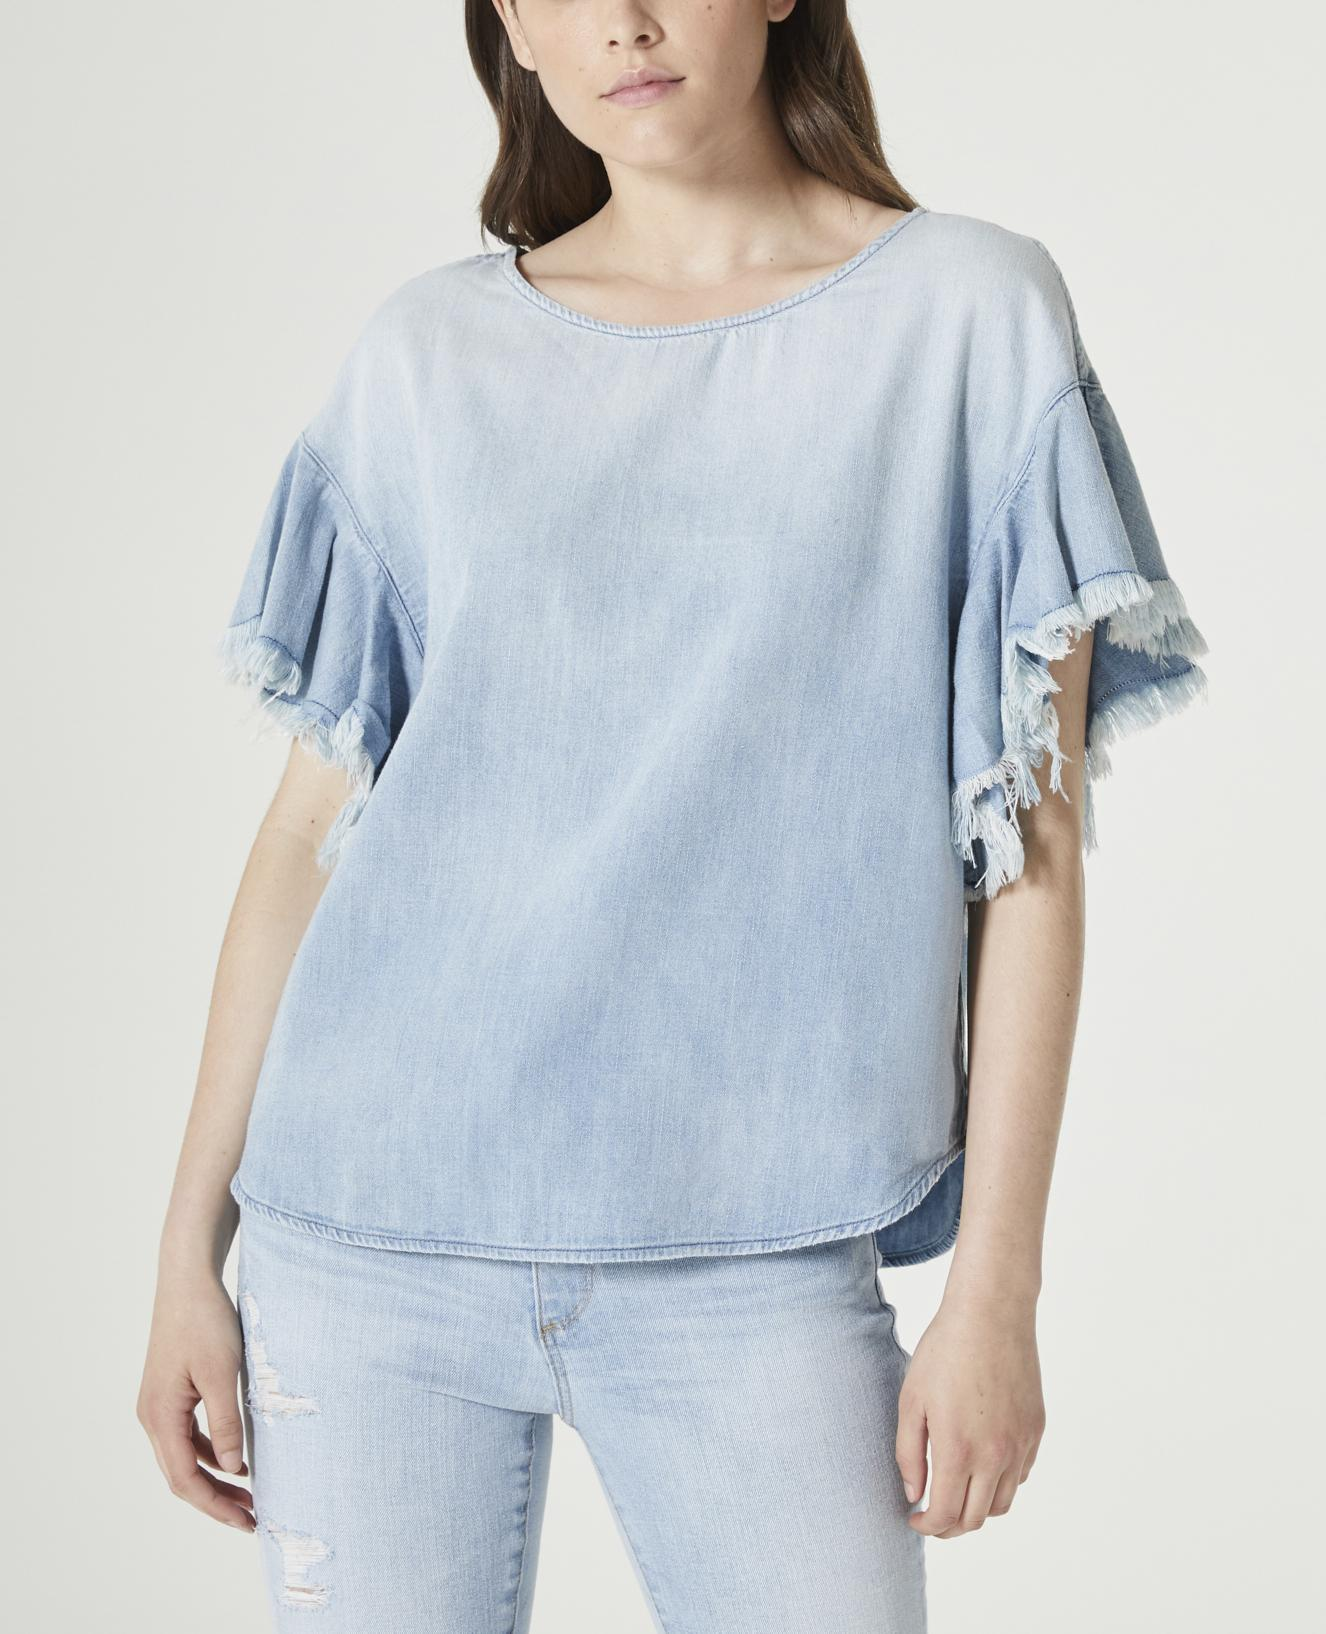 The Shannon Top